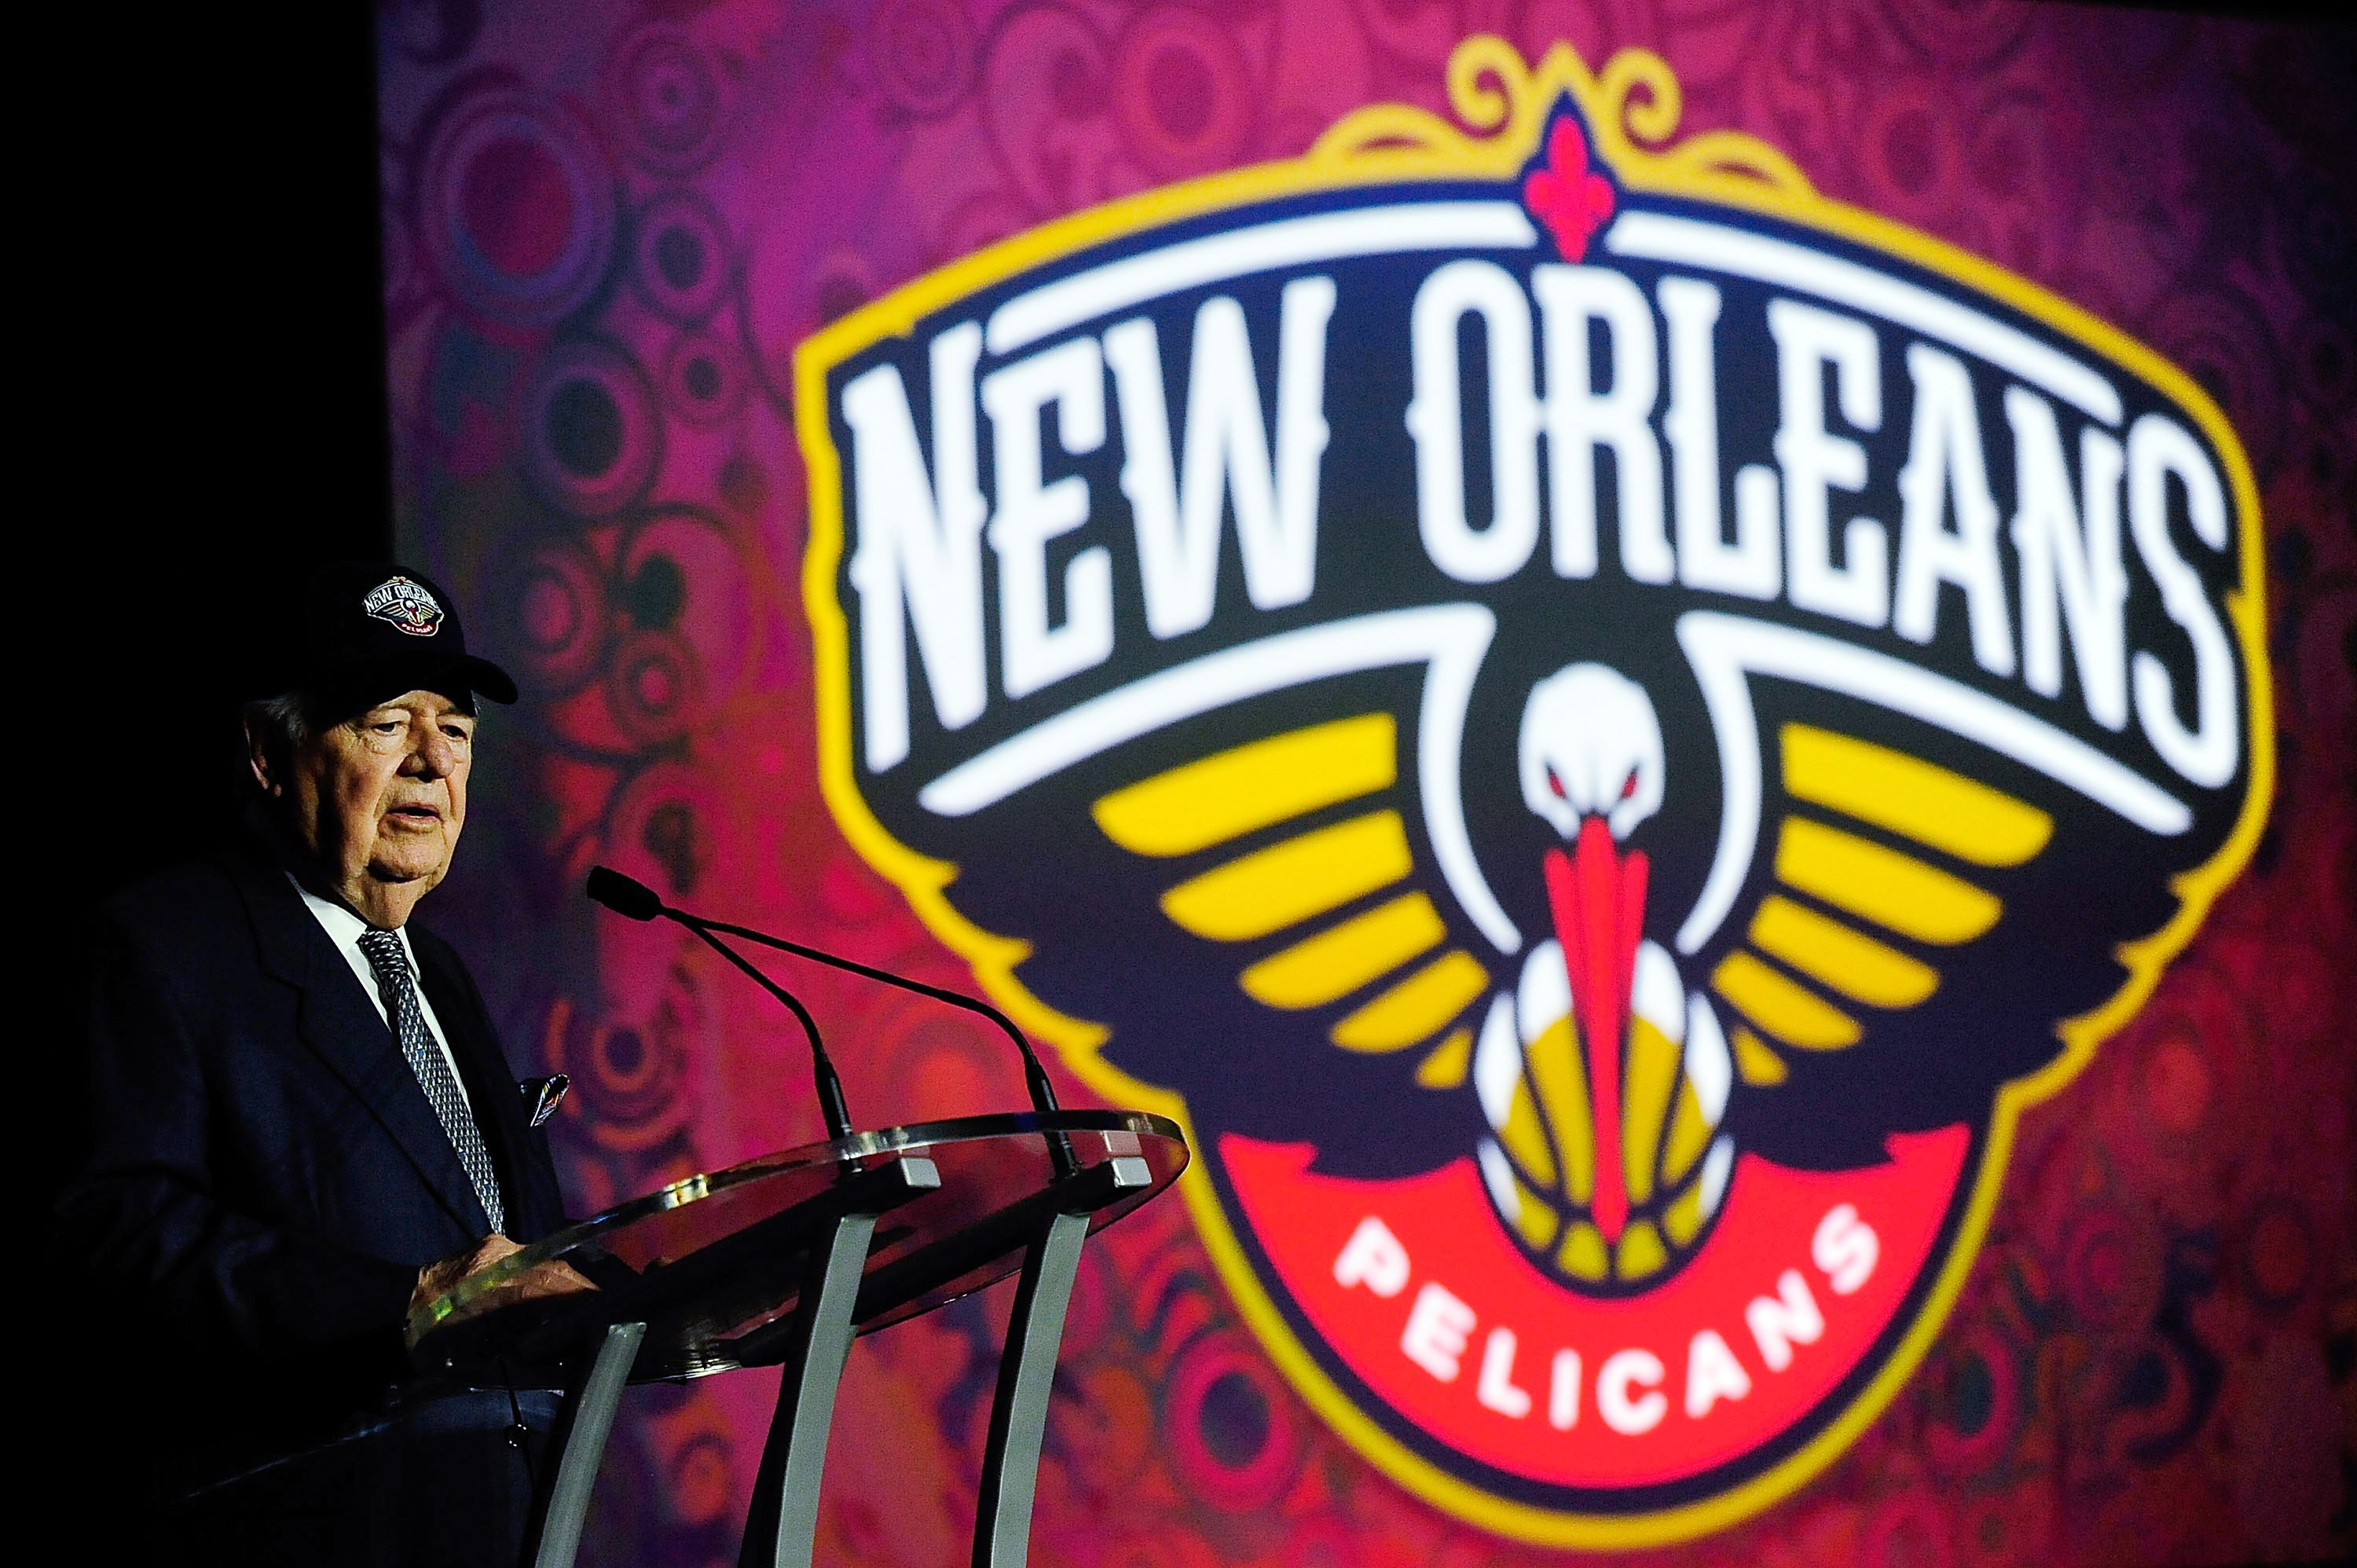 Tom Benson                                                              New Orleans Pelicans                                                              Worth: 1.3 Billion                                                              Forbes Ranking: 386